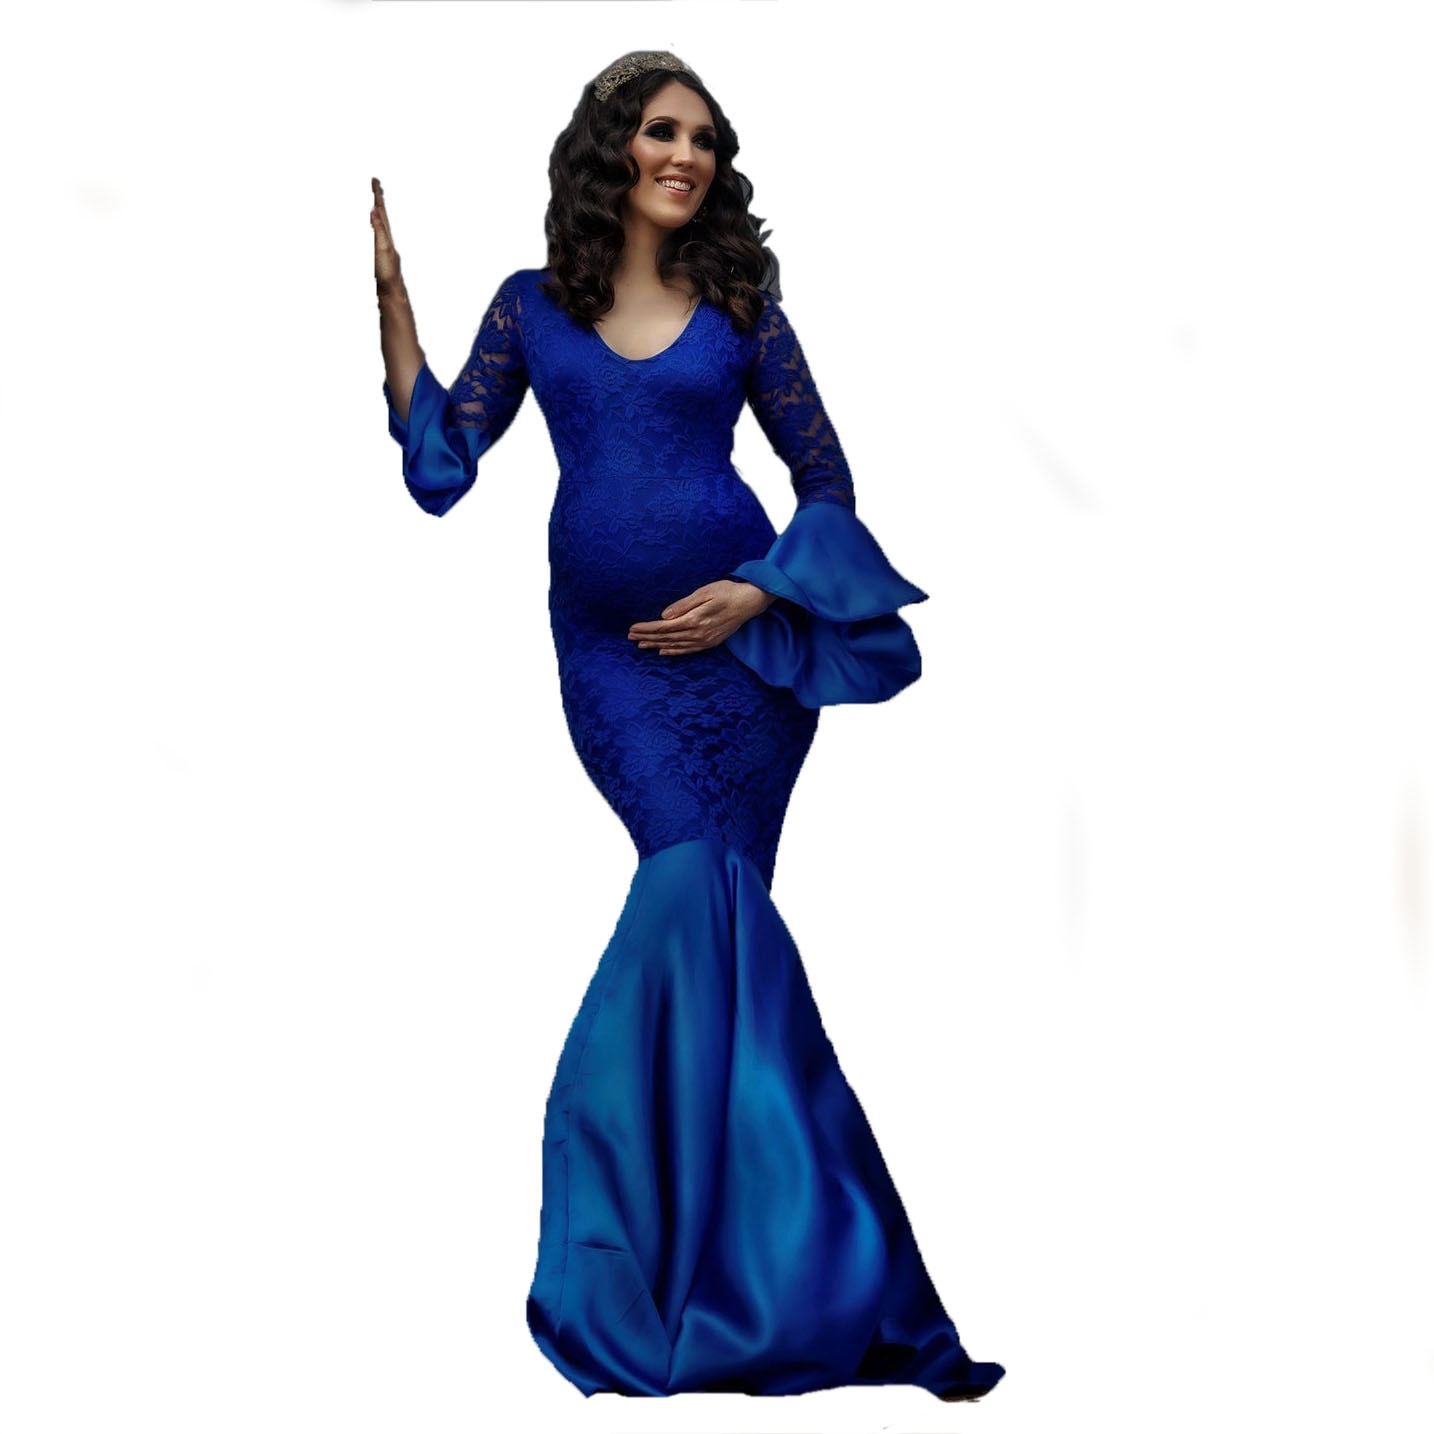 Womens 2021 Formal Lace Maternity Dresses Split Front Long Pregnancy Photography Dress Pregnant Women Maxi Gown For Photo Props enlarge